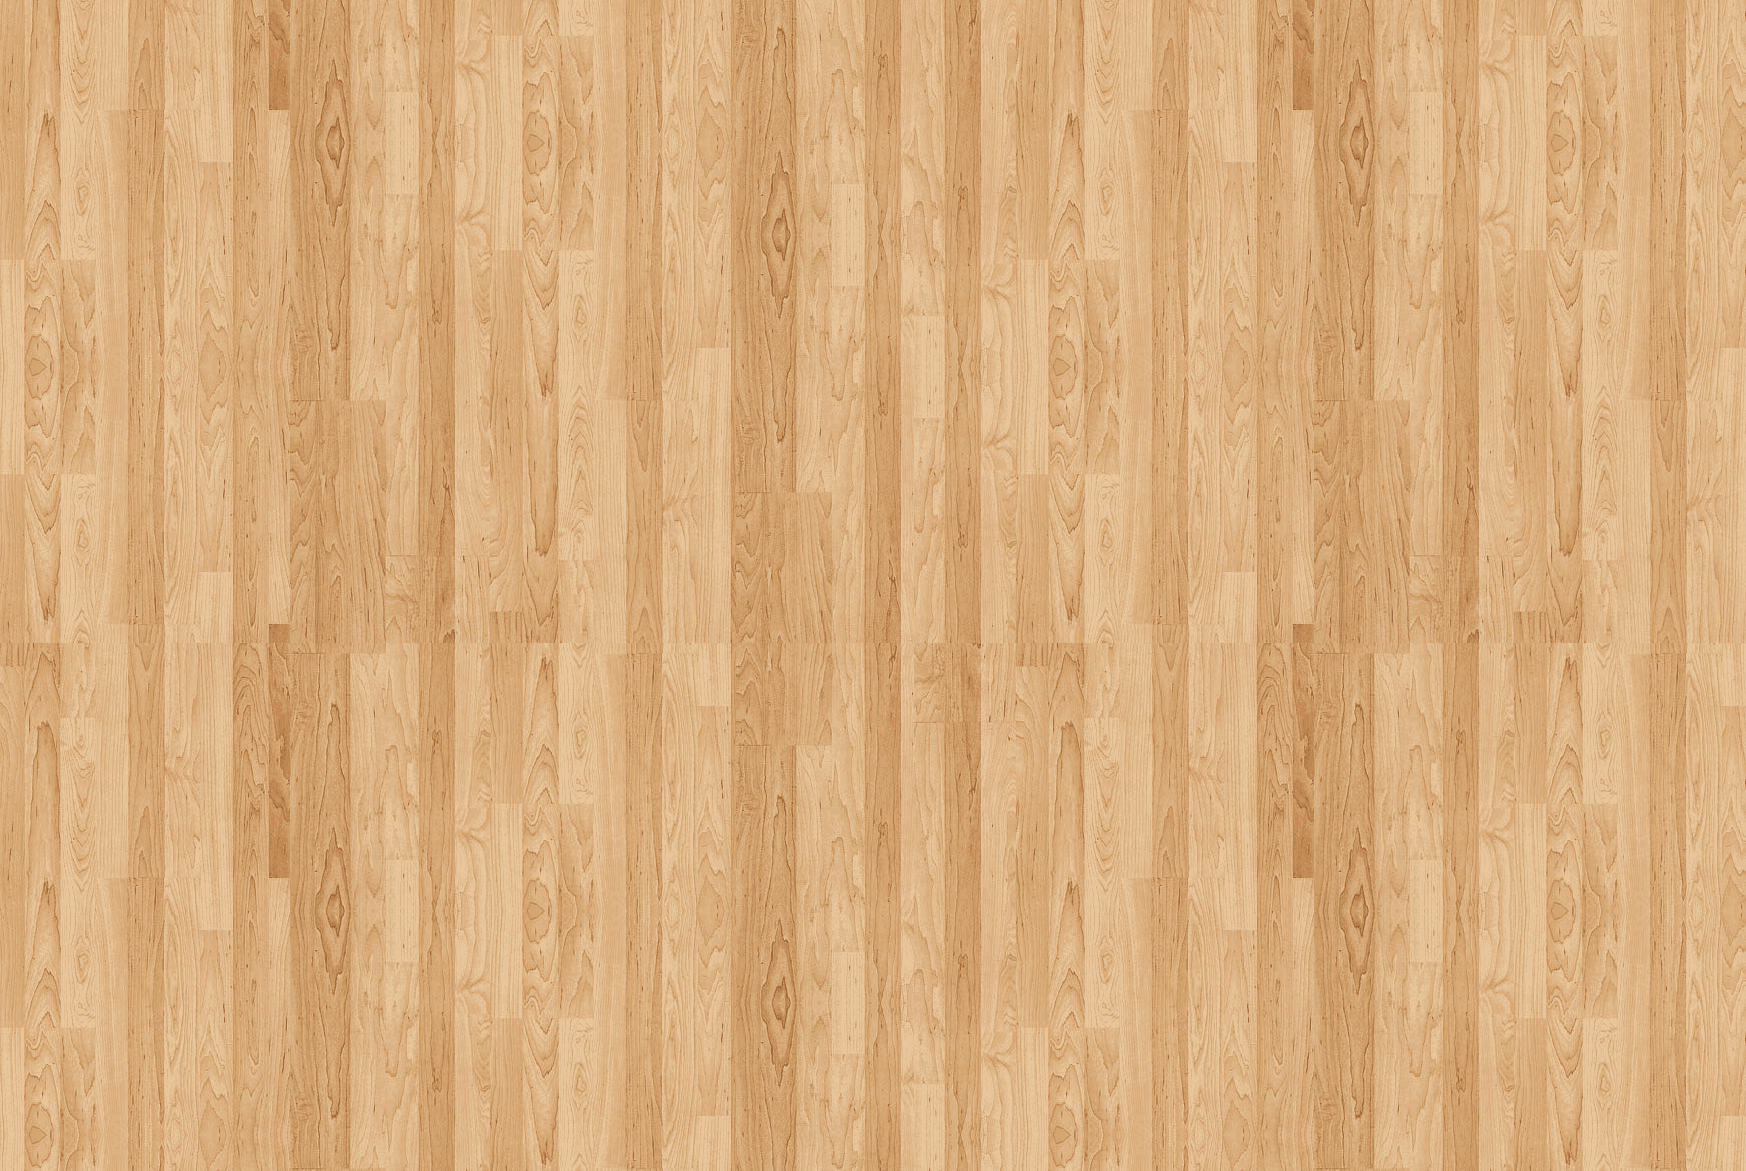 Wood Background 004 HD Wallpaper 4663   HD Desktop Wallpaper 1746x1171